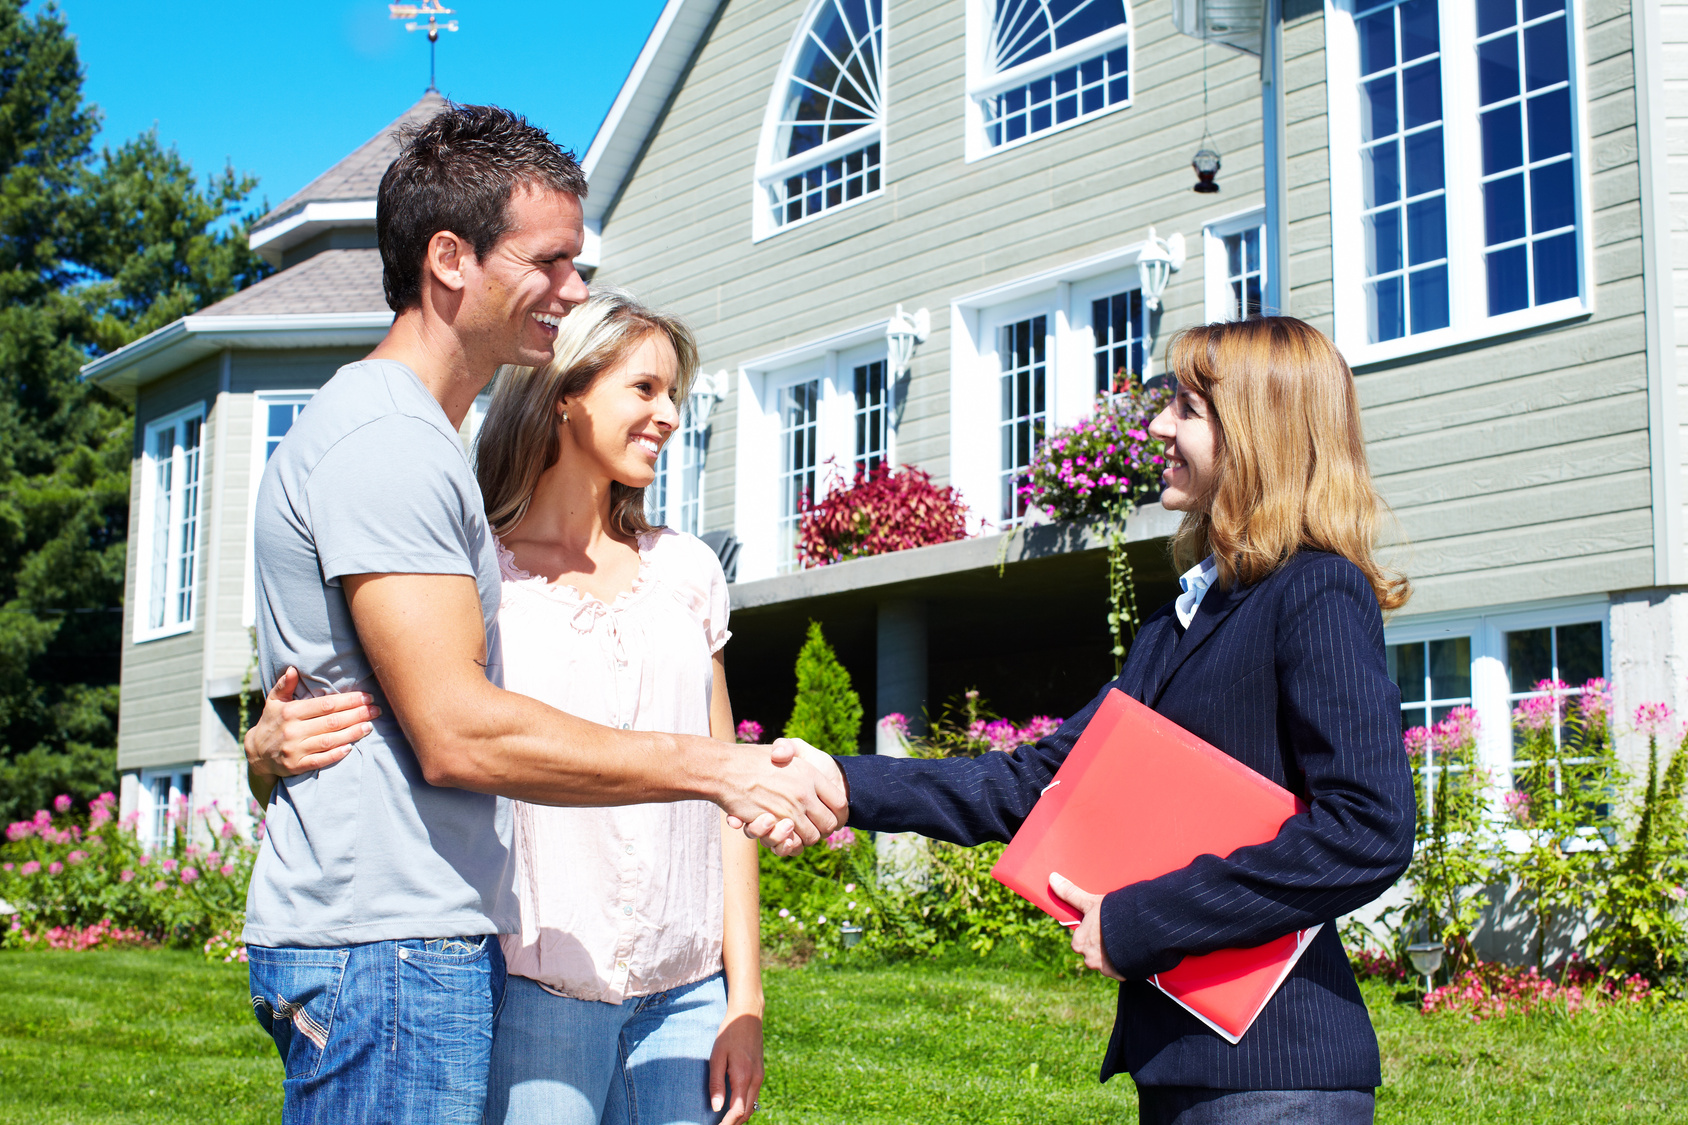 5 tips to choose real estate agents, how to choose best real estate agents, how can i choose best realestate agents to find best property deal for me